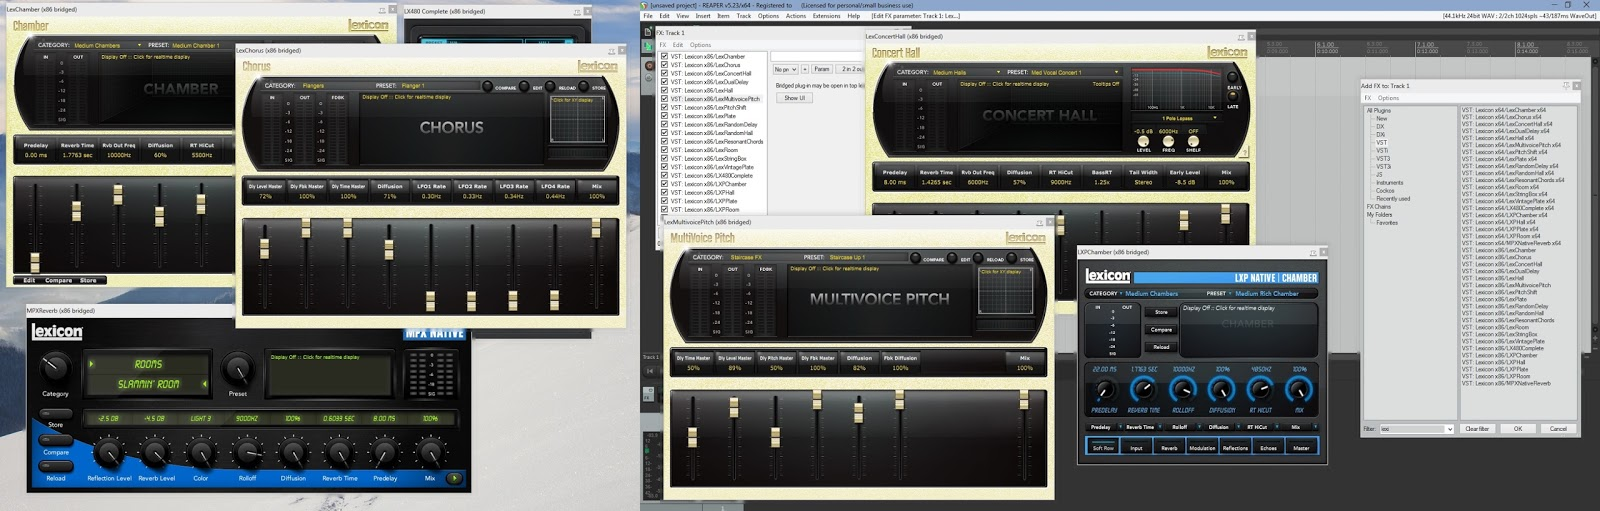 lexicon mpx native reverb test